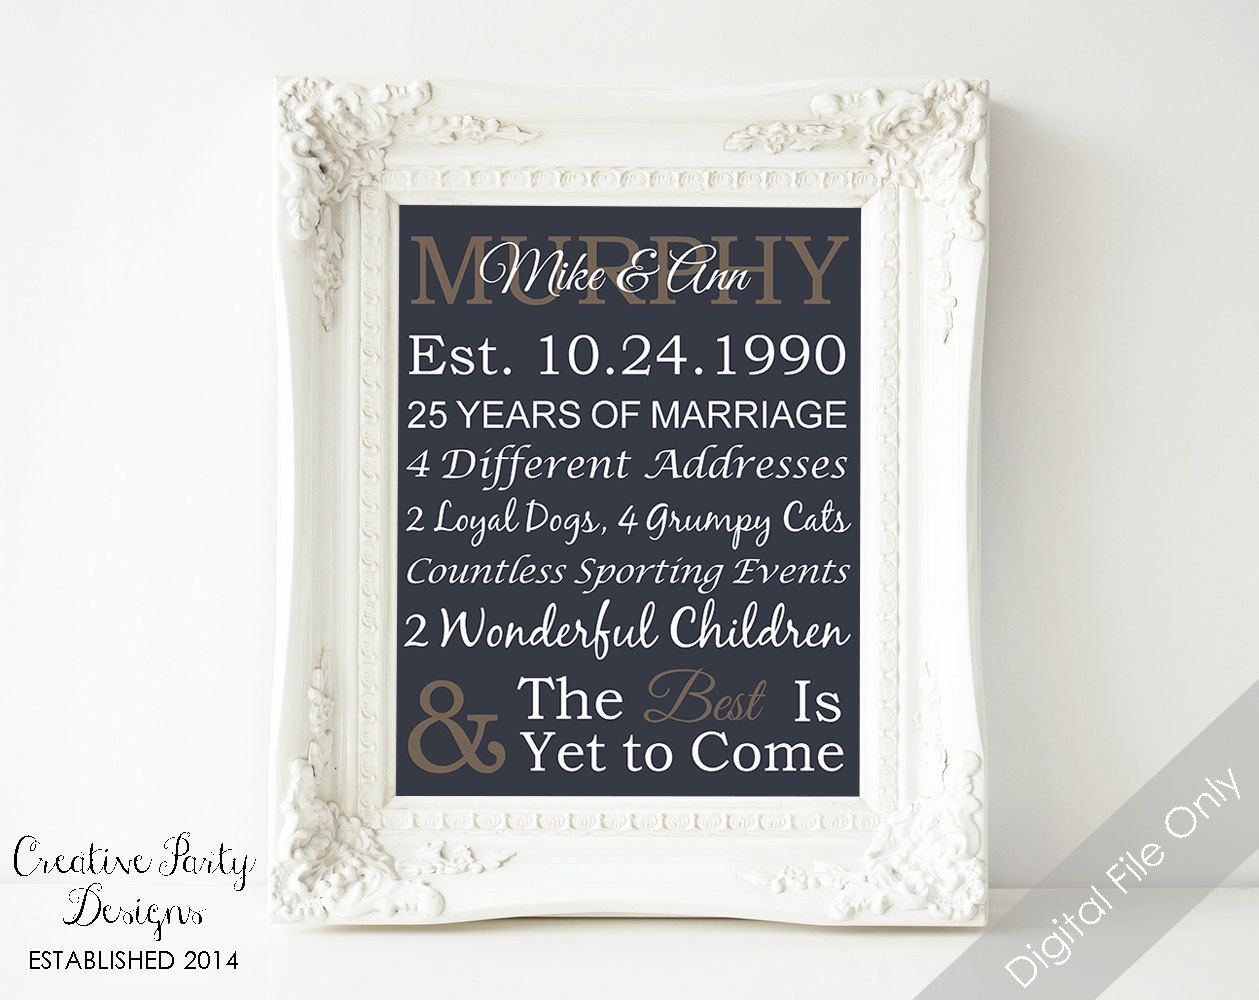 Gifts For Husband 25th Wedding Anniversary: Personalized Anniversary Gift For